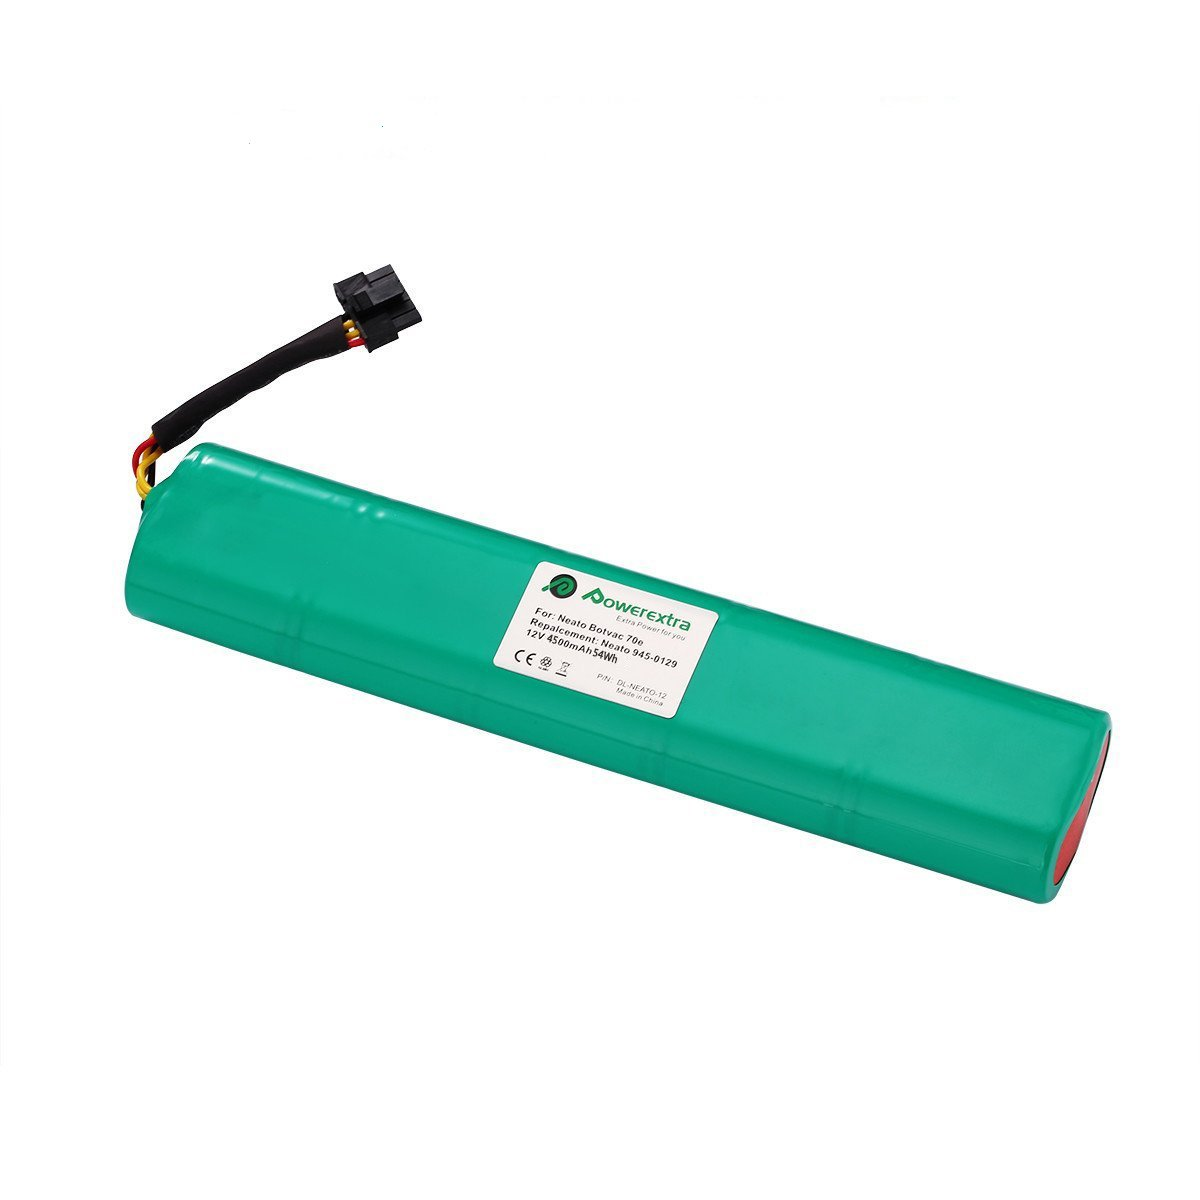 {Upgraded}Powerextra 12V 4500mAh Ni-Mh Battery Pack for Neato Botvac Series and Botvac D Series Neato Battery Neato Botvac Battery 70e, 75, 80, 85, Neato Robot Vacuum Cleaners.